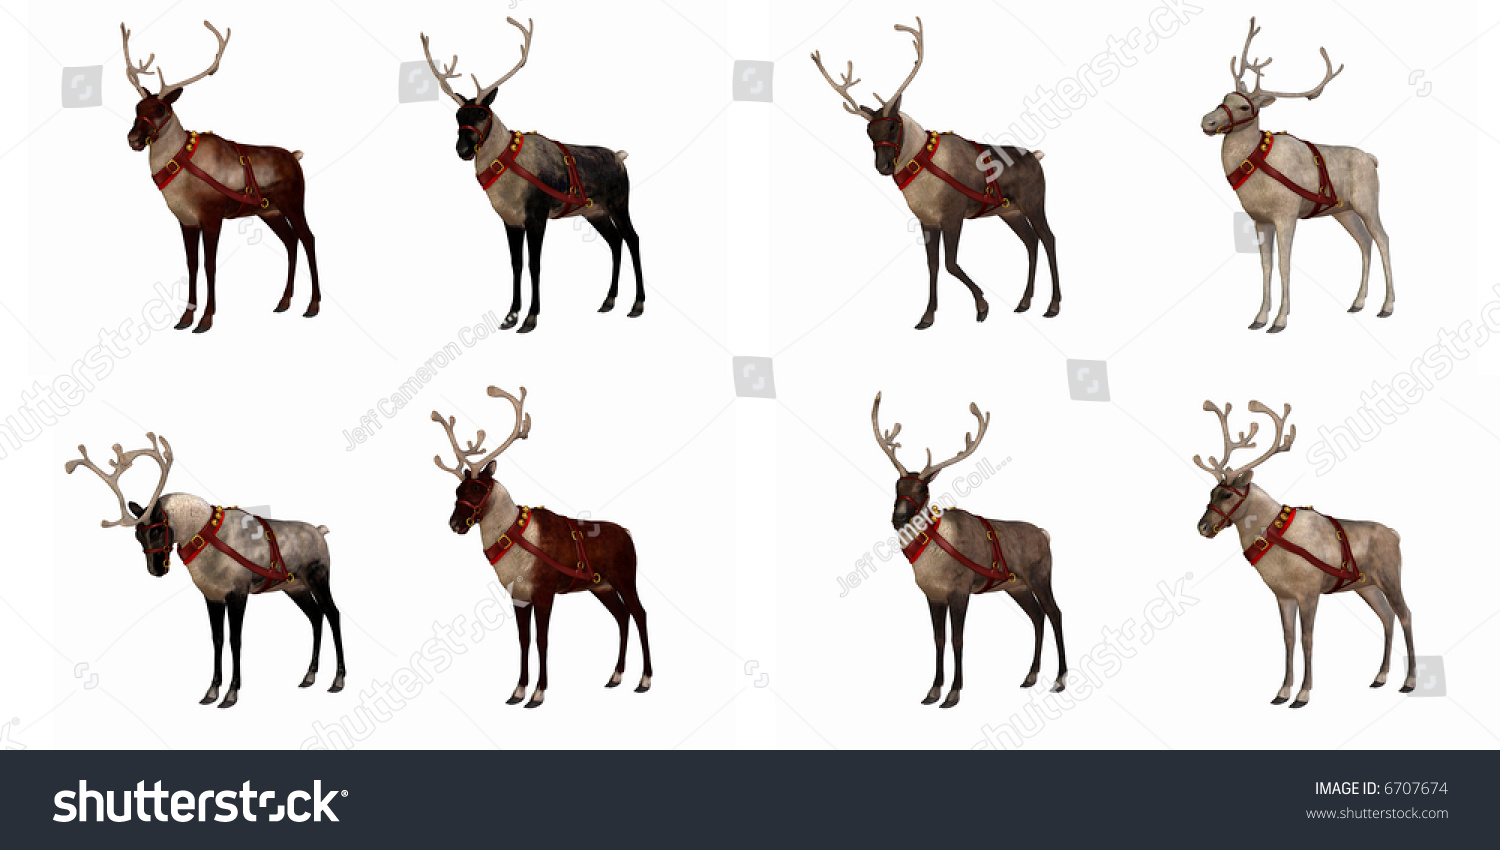 dasher dancer prancer vixen comet cupid donner blitzen